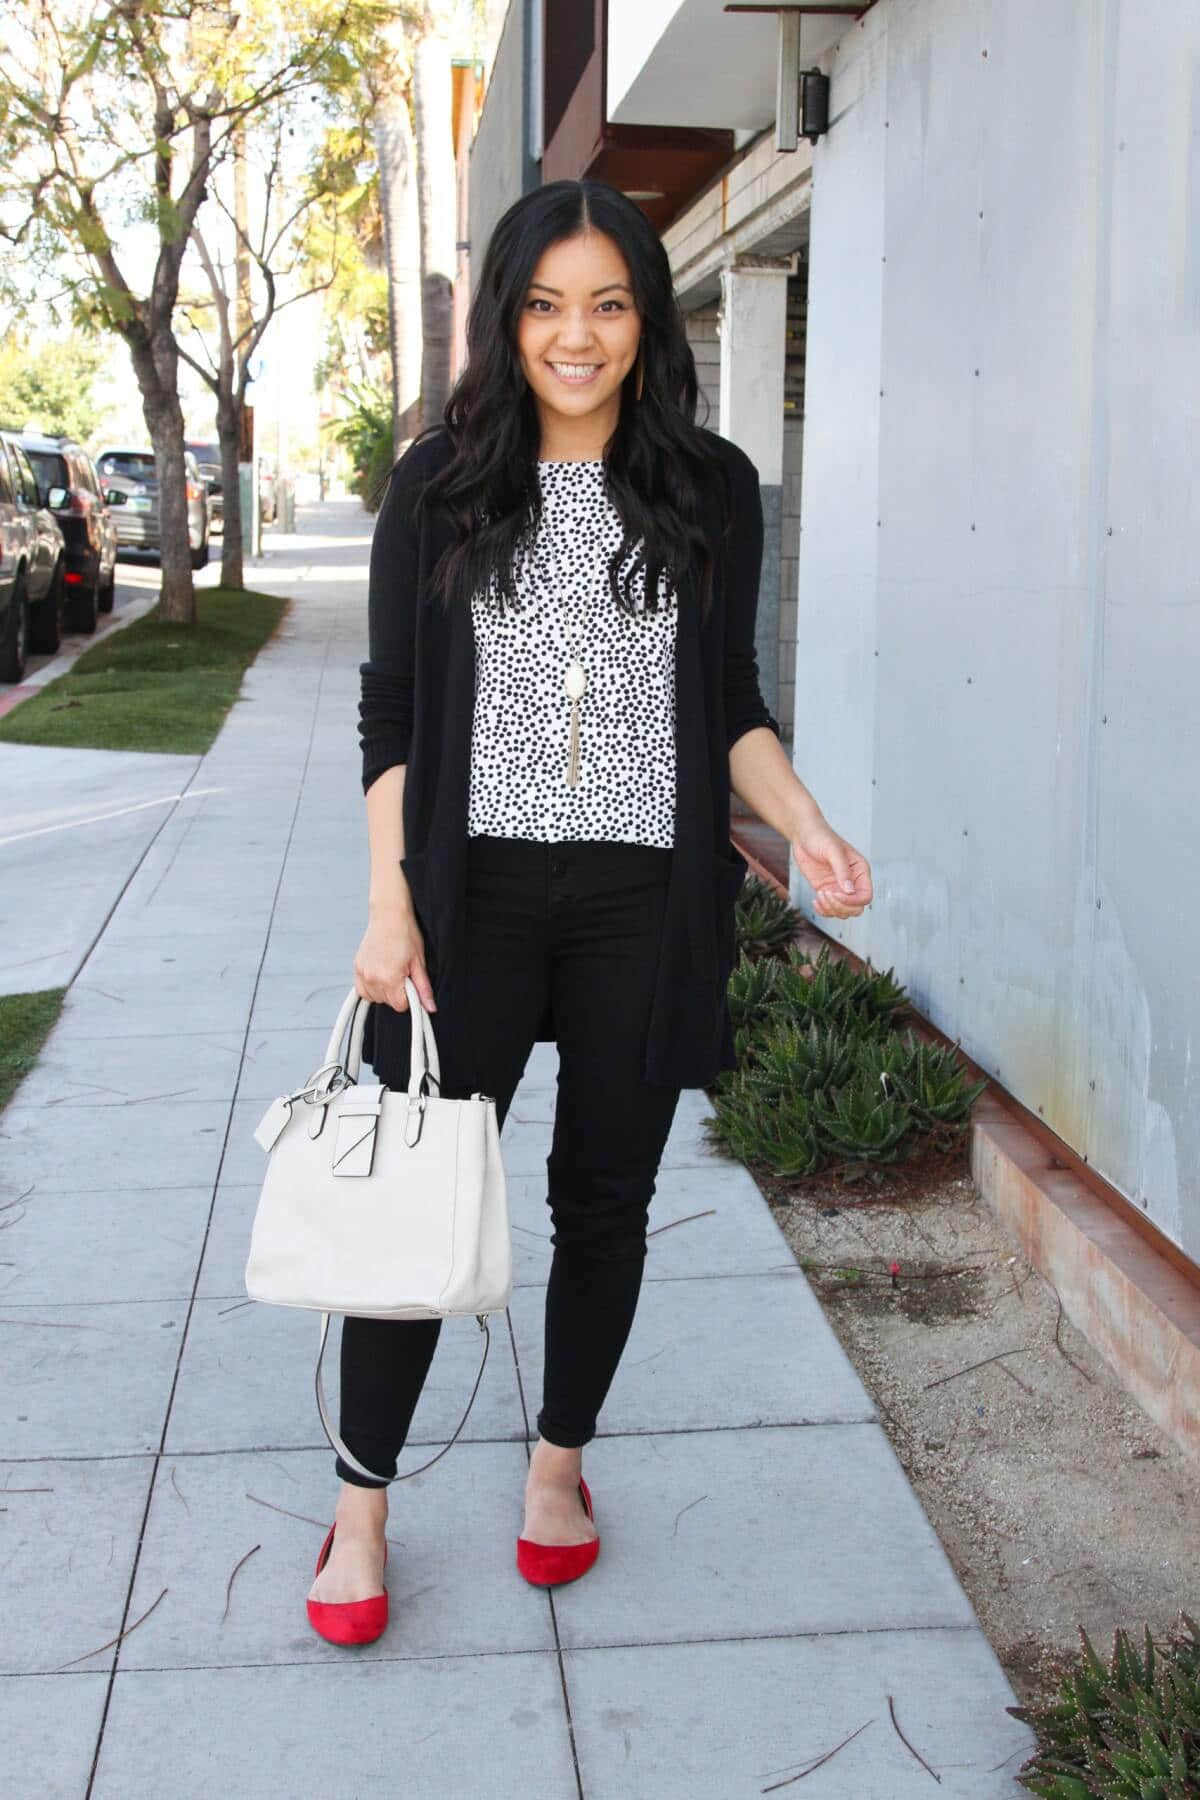 Classic Outfit black + white + red: black and white top + black cardigan + black pants + red flats + white bag + pendant necklace